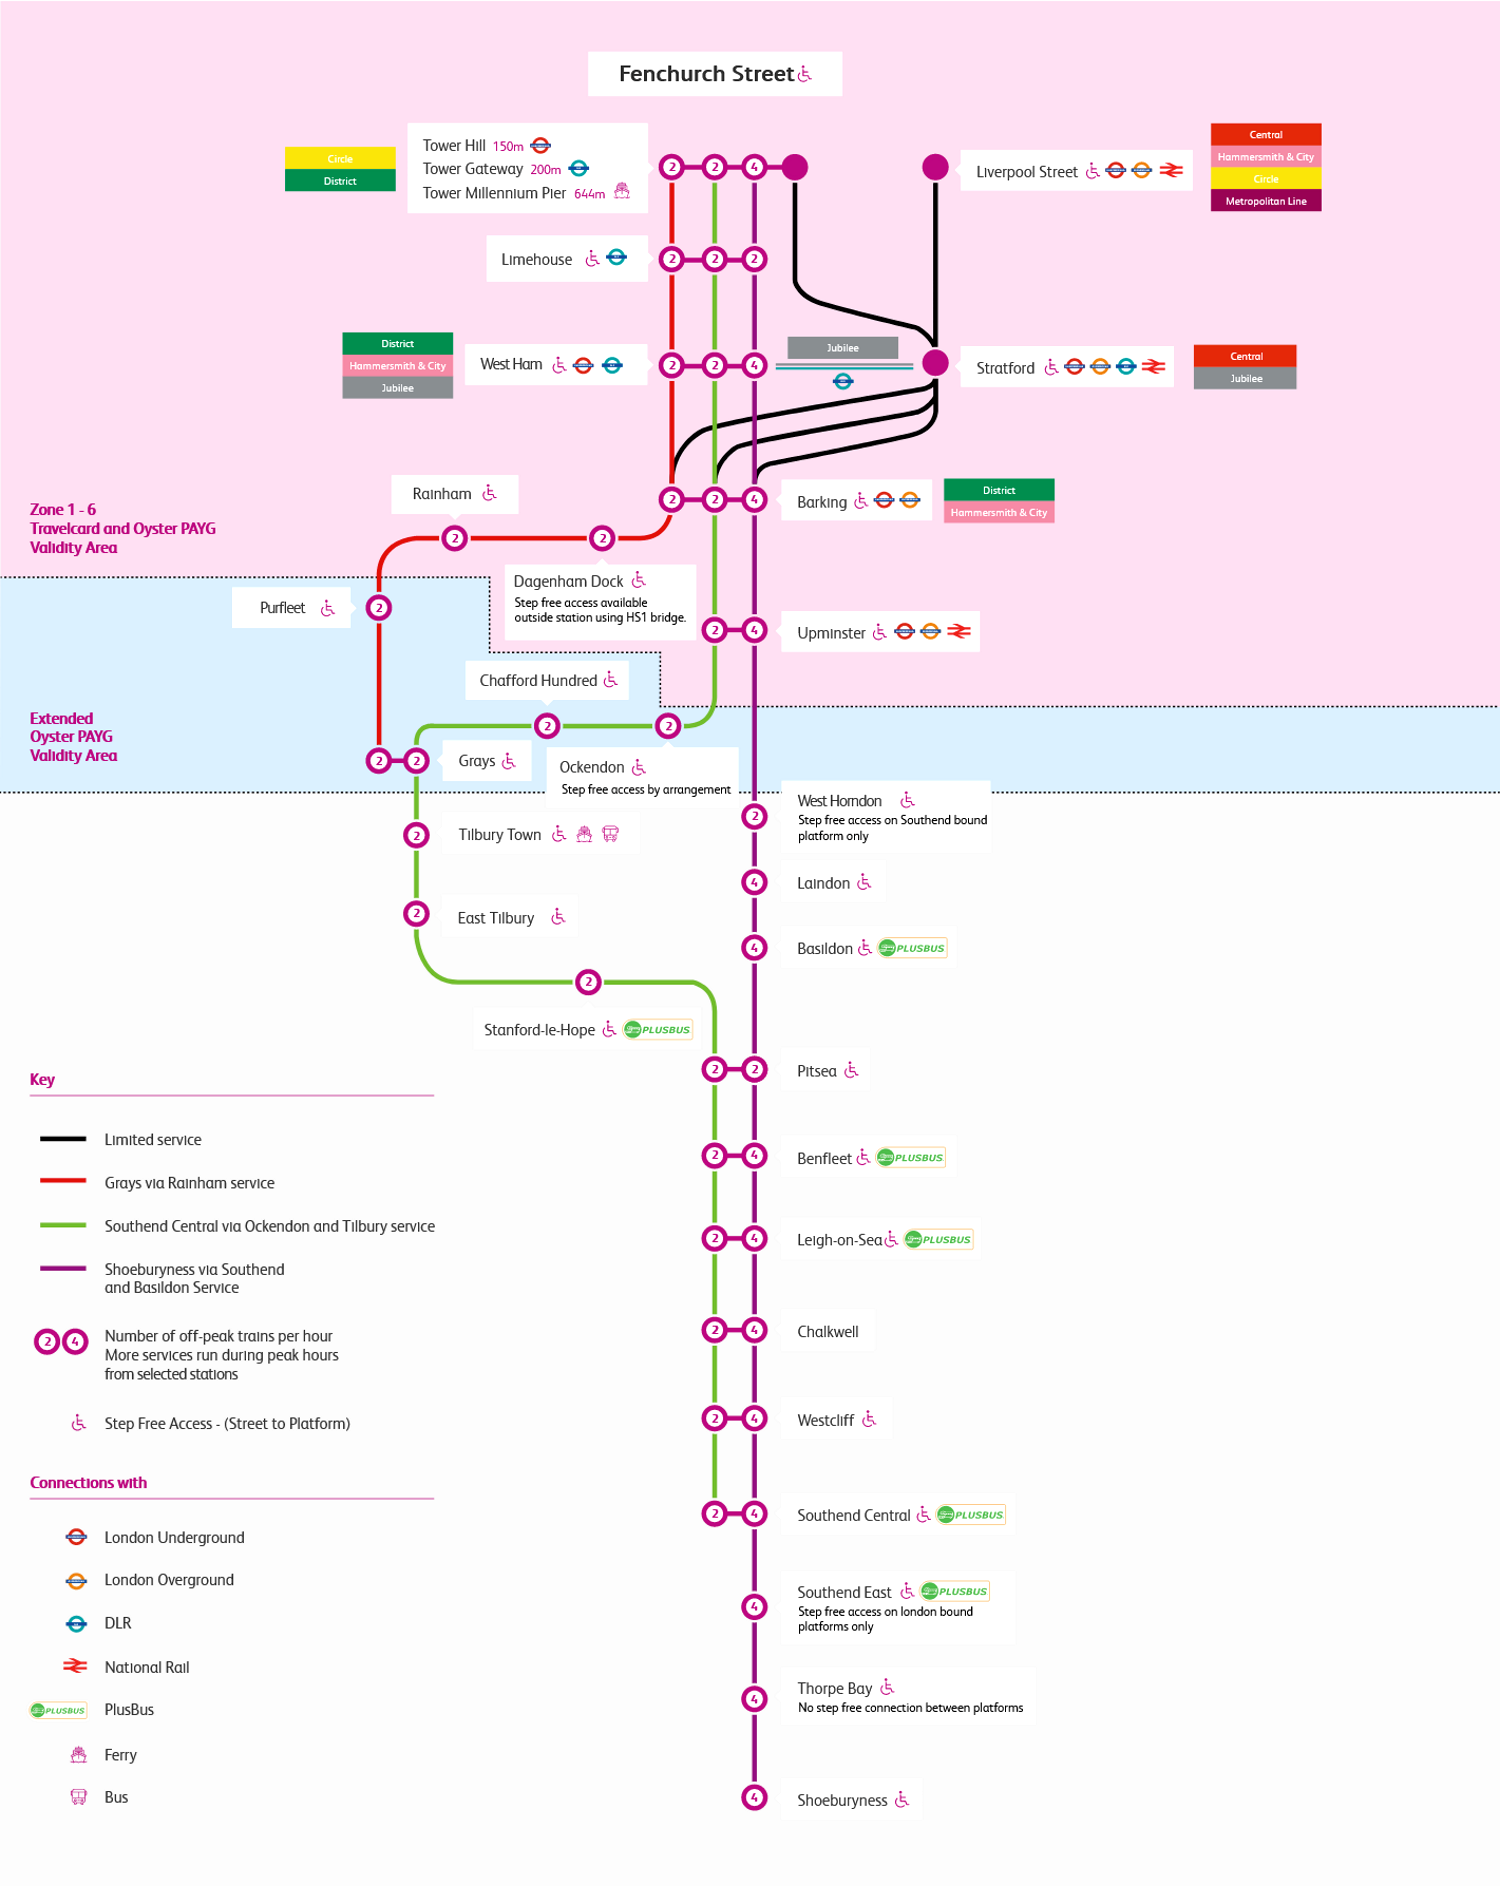 Image showing the c2c route map circa 2019.